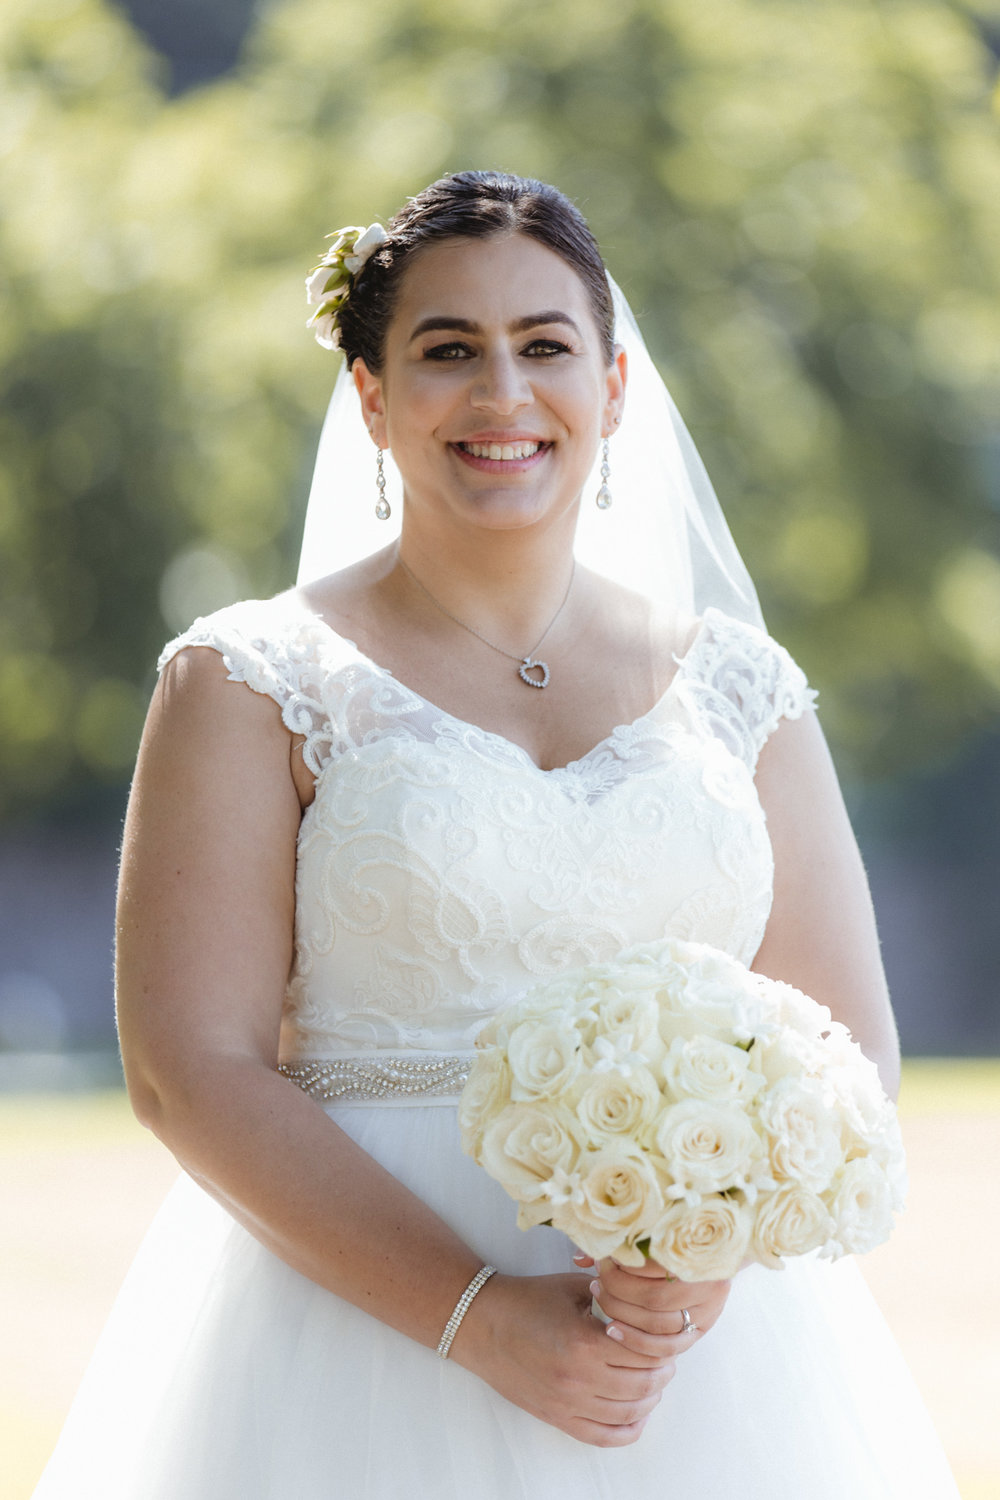 Bride beams in lace, scoop neck gown, with accent belt, bouquet from Arcadia Florist - Bride wears lace gown, bridesmaids wear navy, floor length gowns from Alexia Designs. White & green bouquets from Arcadia Florists - New Rochelle wedding - New York wedding - Hudson Valley wedding - Heather & Ian's wedding - Amy Sims Photography